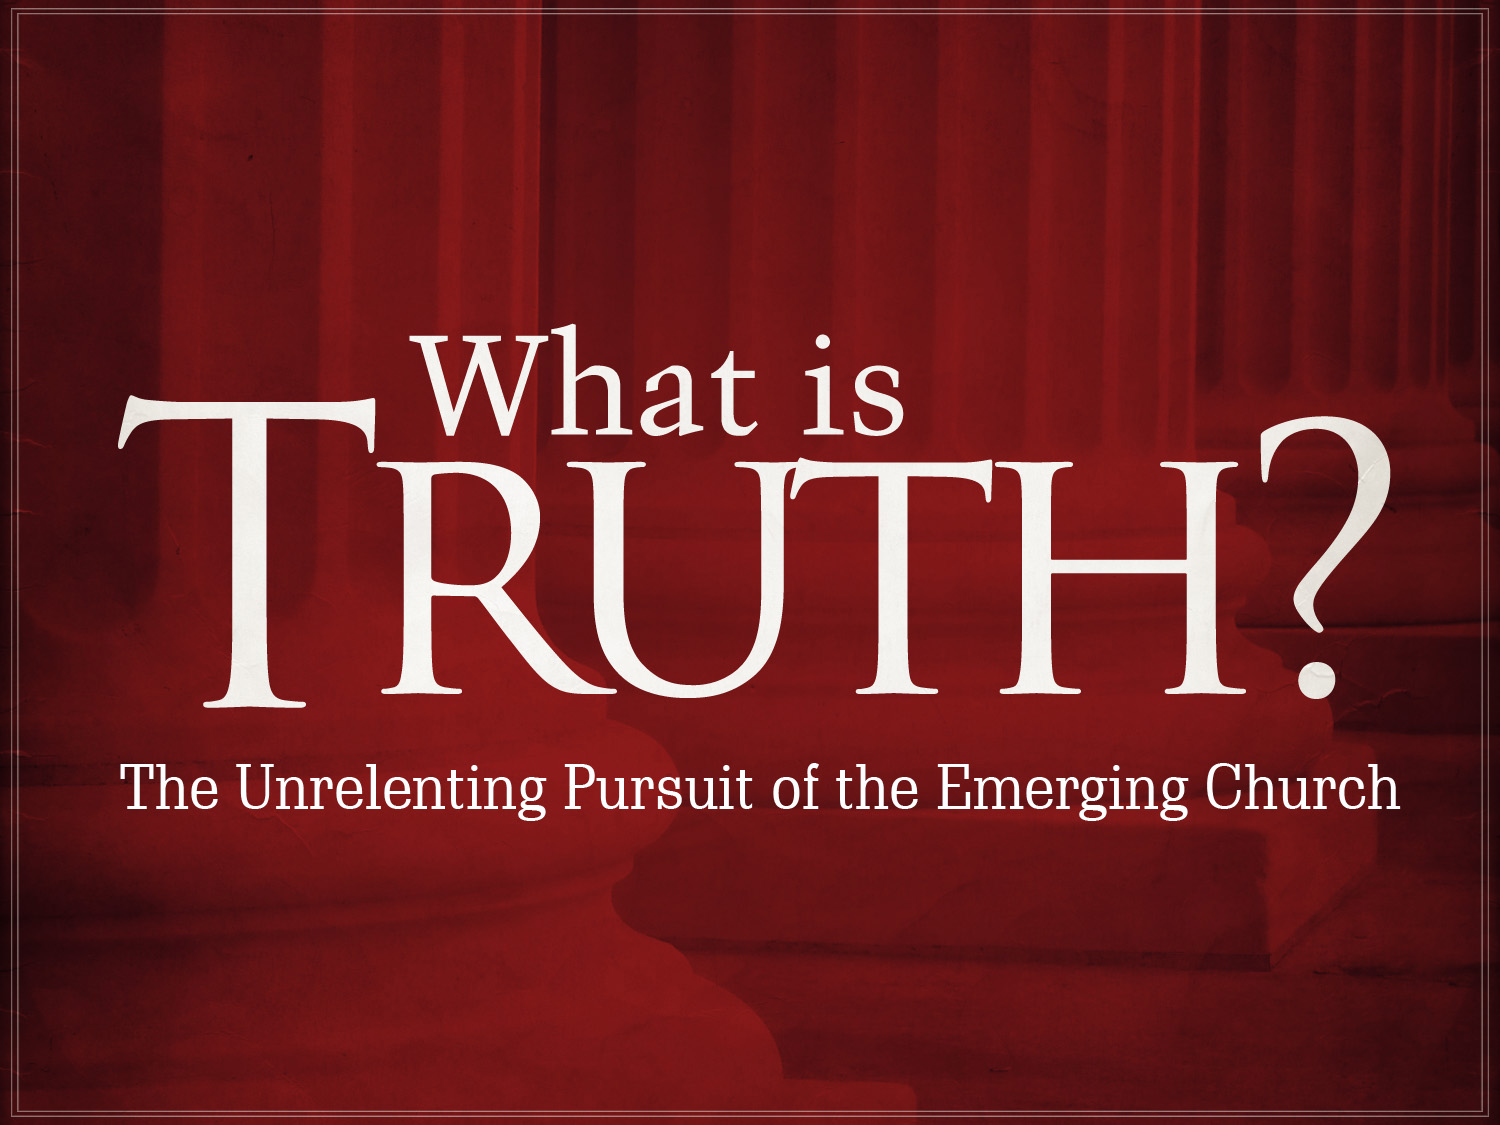 understanding postmodernism through the emerging church This essay was produced by one of our professional writers as a learning aid to help you with your studies postmodernism emerging church how can we understand.